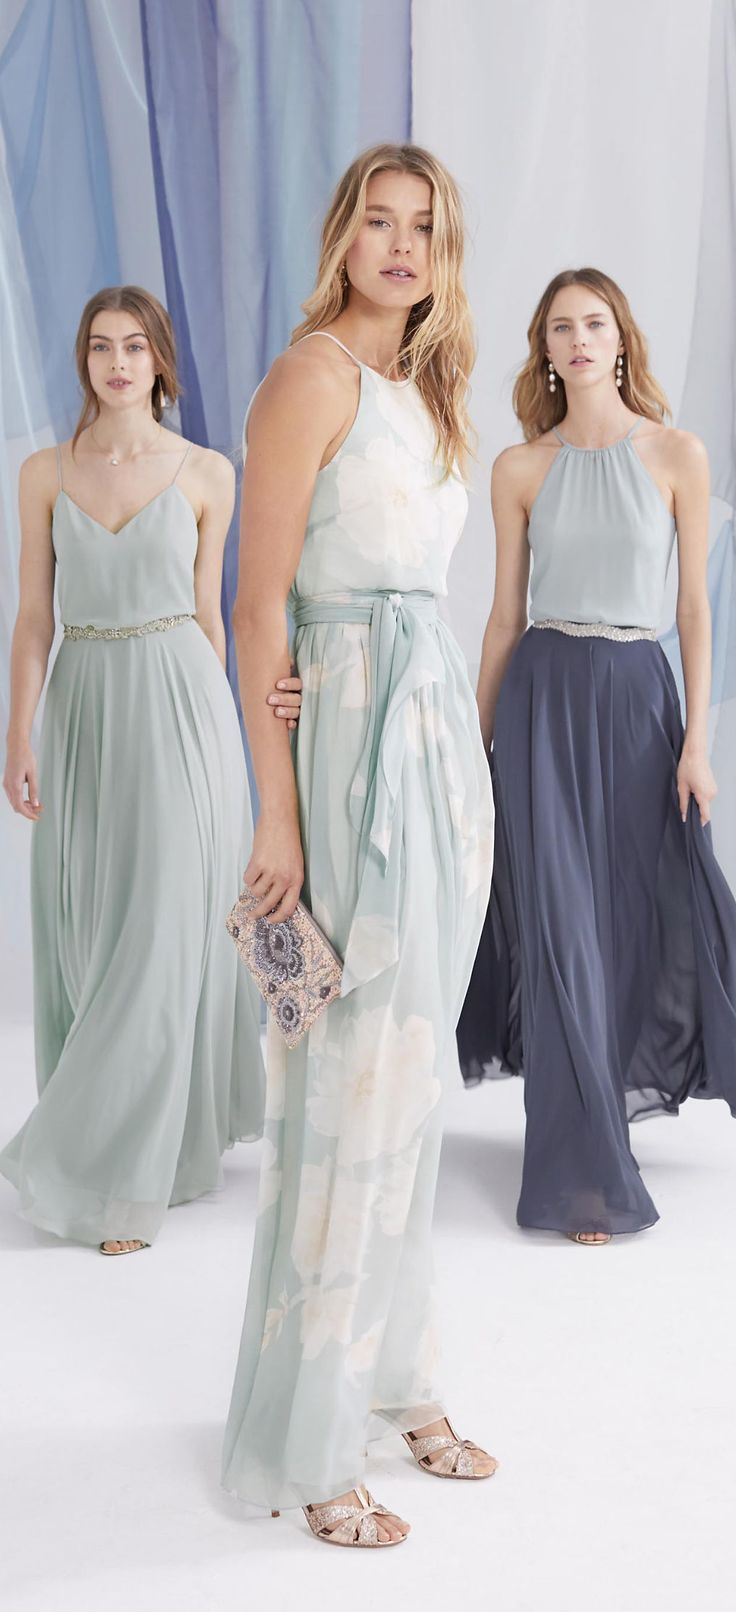 618 best bridesmaids images on pinterest bridesmaids marriage floral bridesmaid dress mix and match bridesmaid skirts in navy blue and dusty aqua ombrellifo Image collections